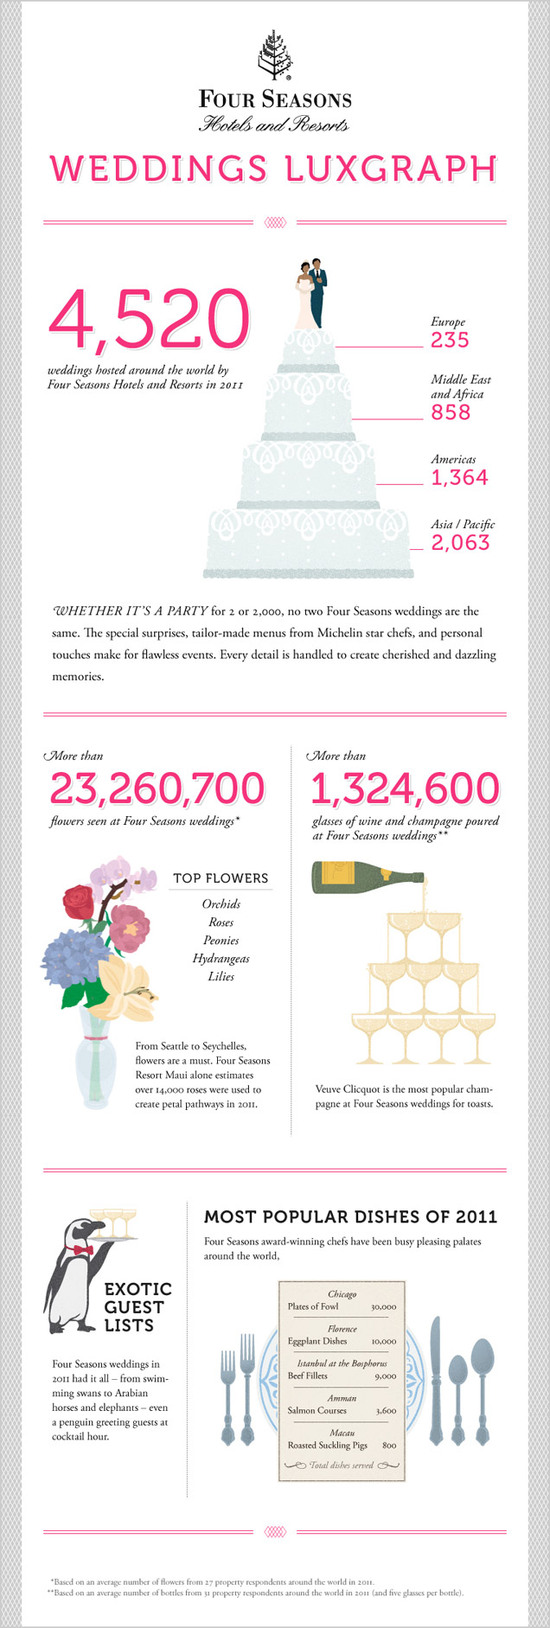 photo of four seasons weddings infographic